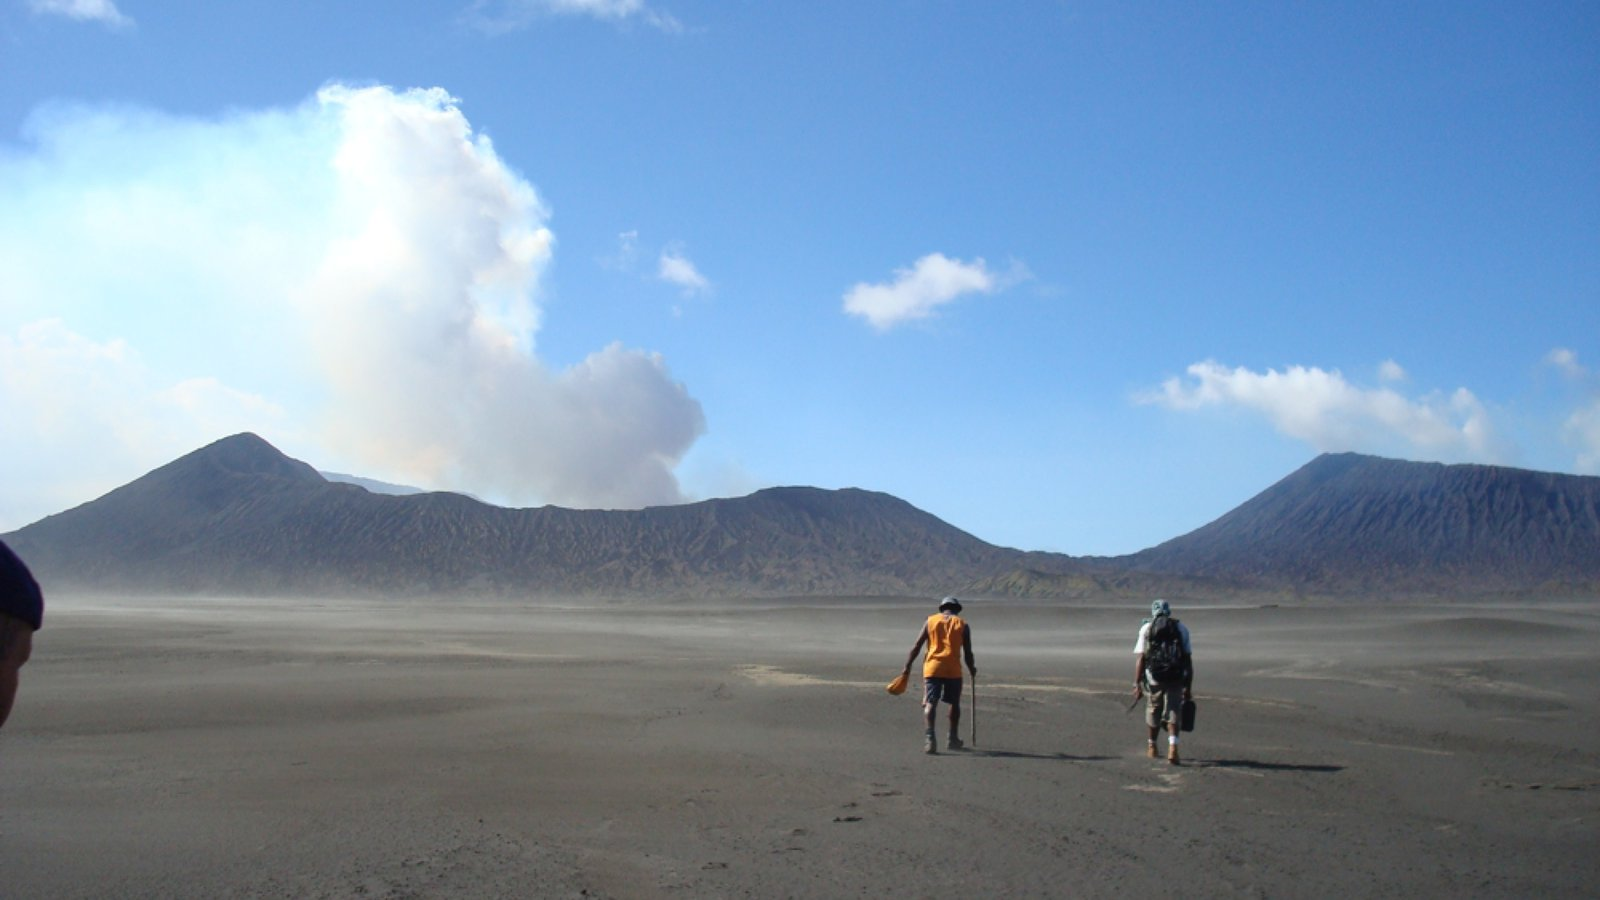 Lon Marum - Culture, Magic and Life on an Active Volcano